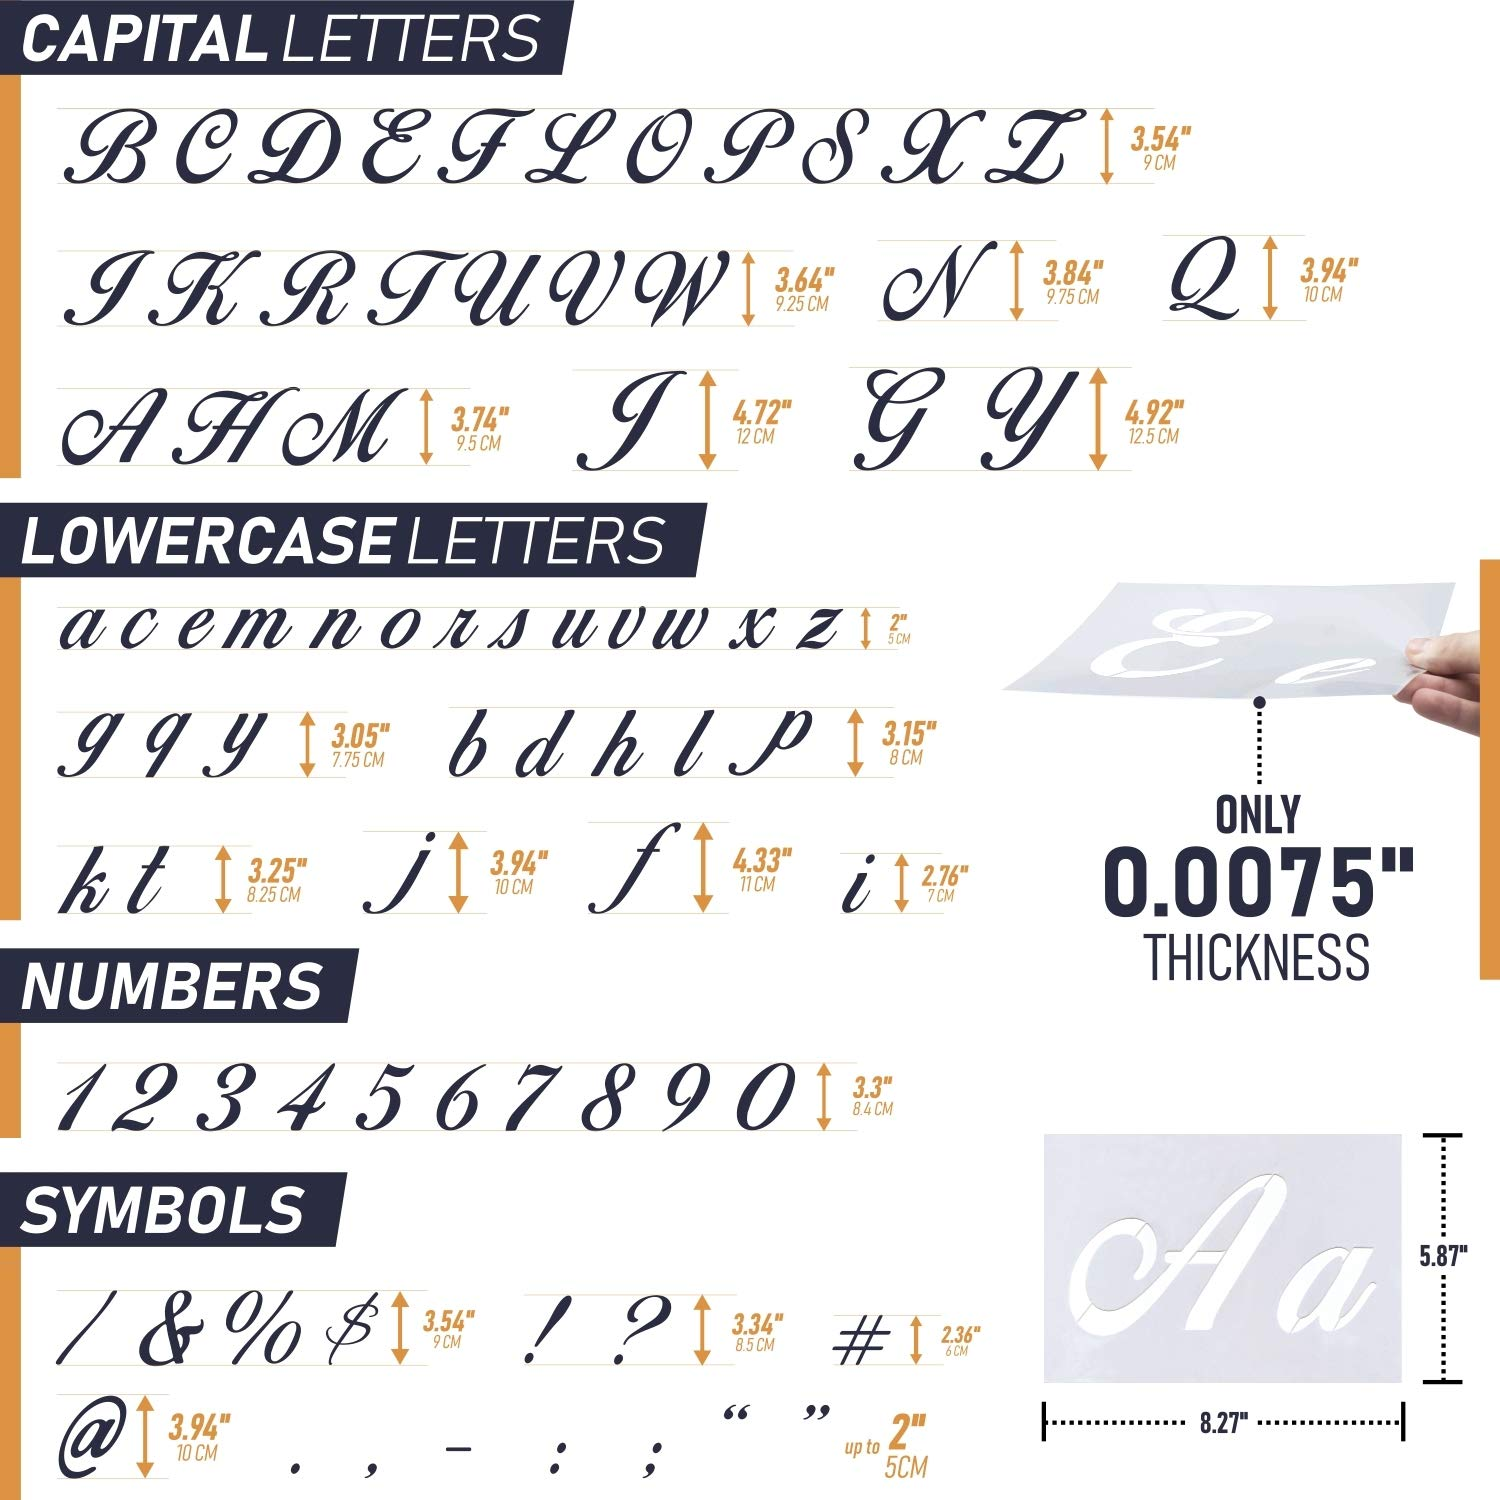 Reusable Plastic Art Craft Stencils with Numbers and Signs Alphabet Stencils with Calligraphy Font Upper and Lowercase Letters Set of 36 PCs 8.27x5.87 Letter Stencils for Painting on Wood